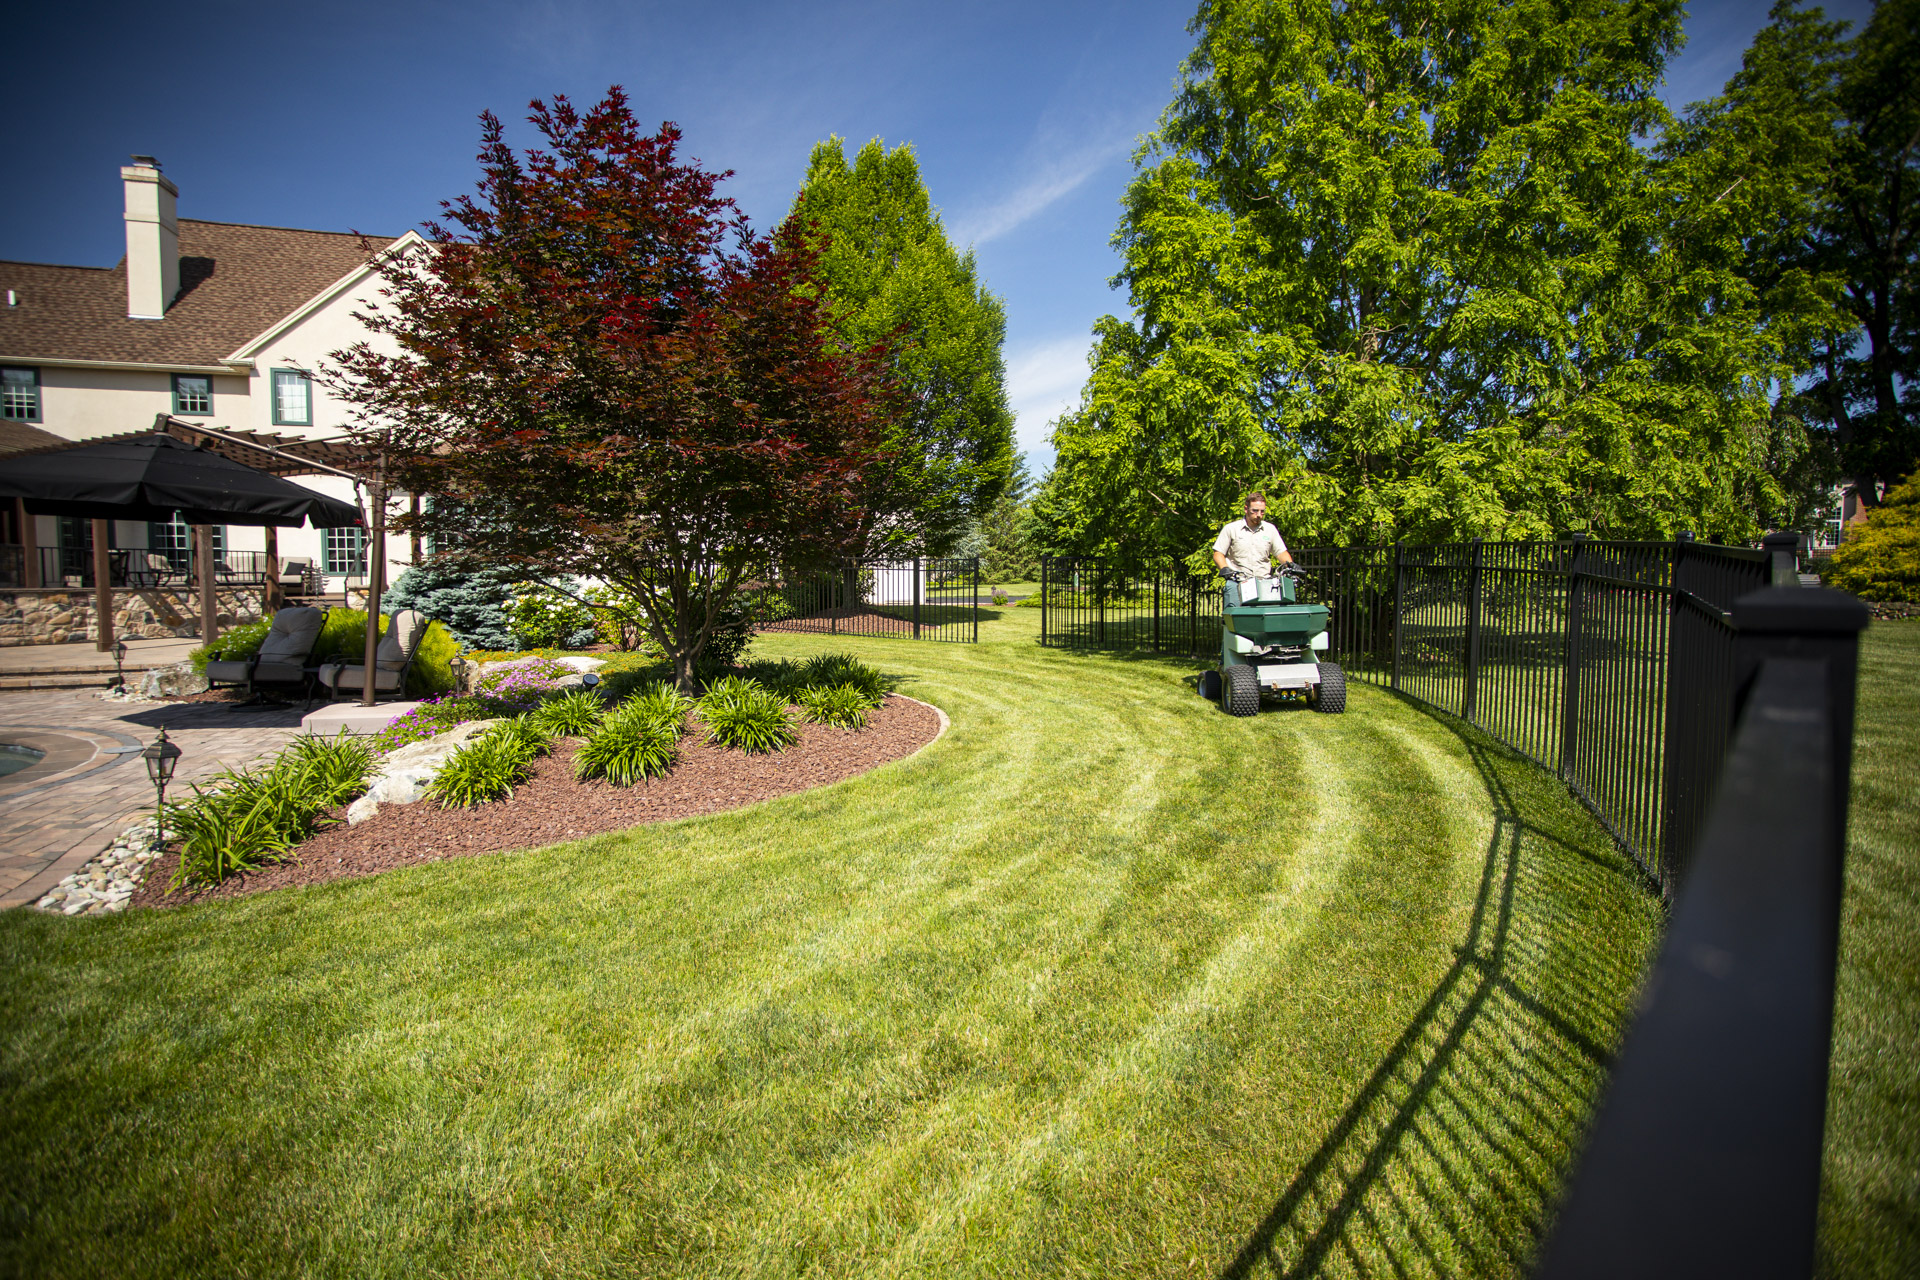 How to Choose the Right Lawn Care Program For Your Home